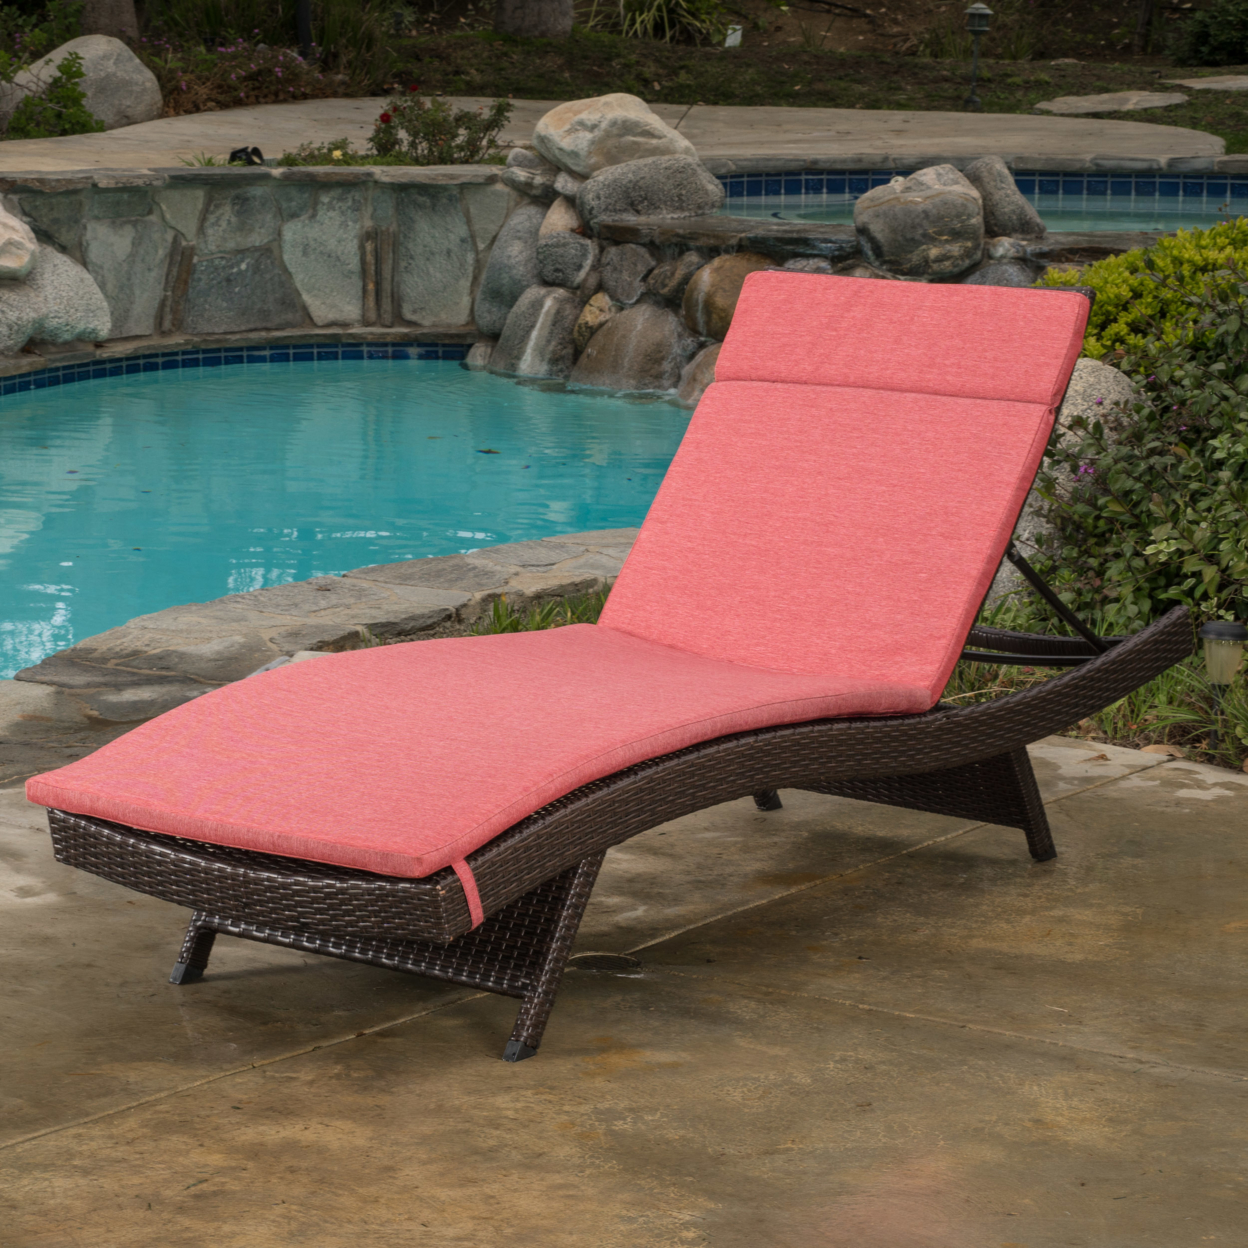 Lakeport Outdoor Adjustable Chaise Lounge Chair w/ Cushion (1)